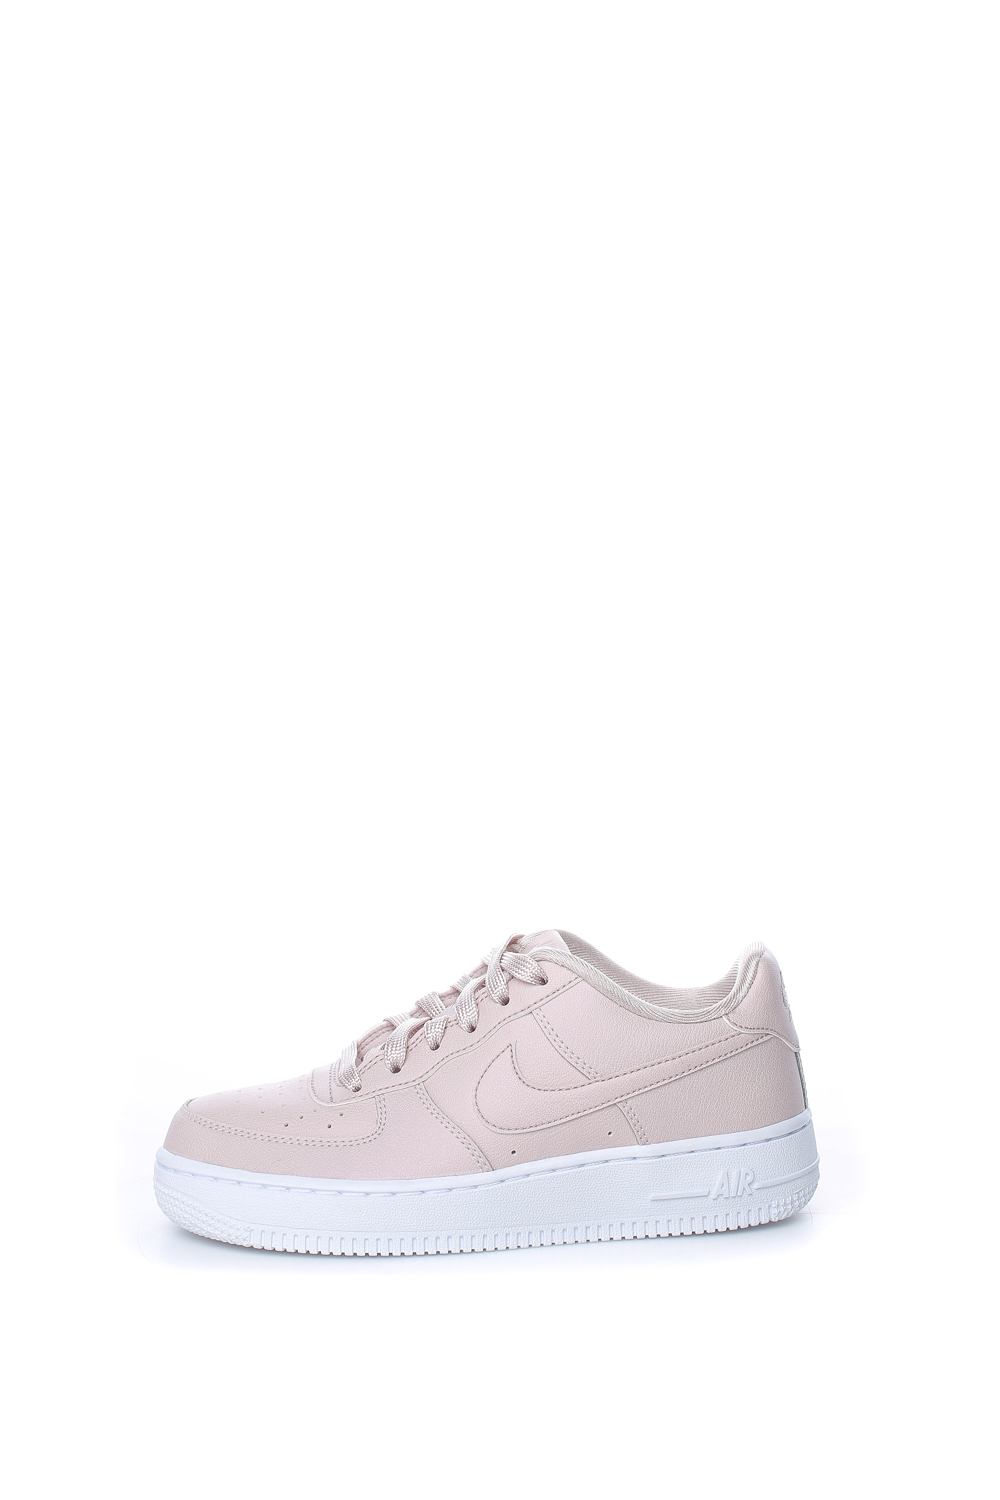 Collective Online NIKE – Κοριτσίστικα παπούτσια NIKE AIR FORCE 1 SS (GS) ροζ 50be7ddd7ed